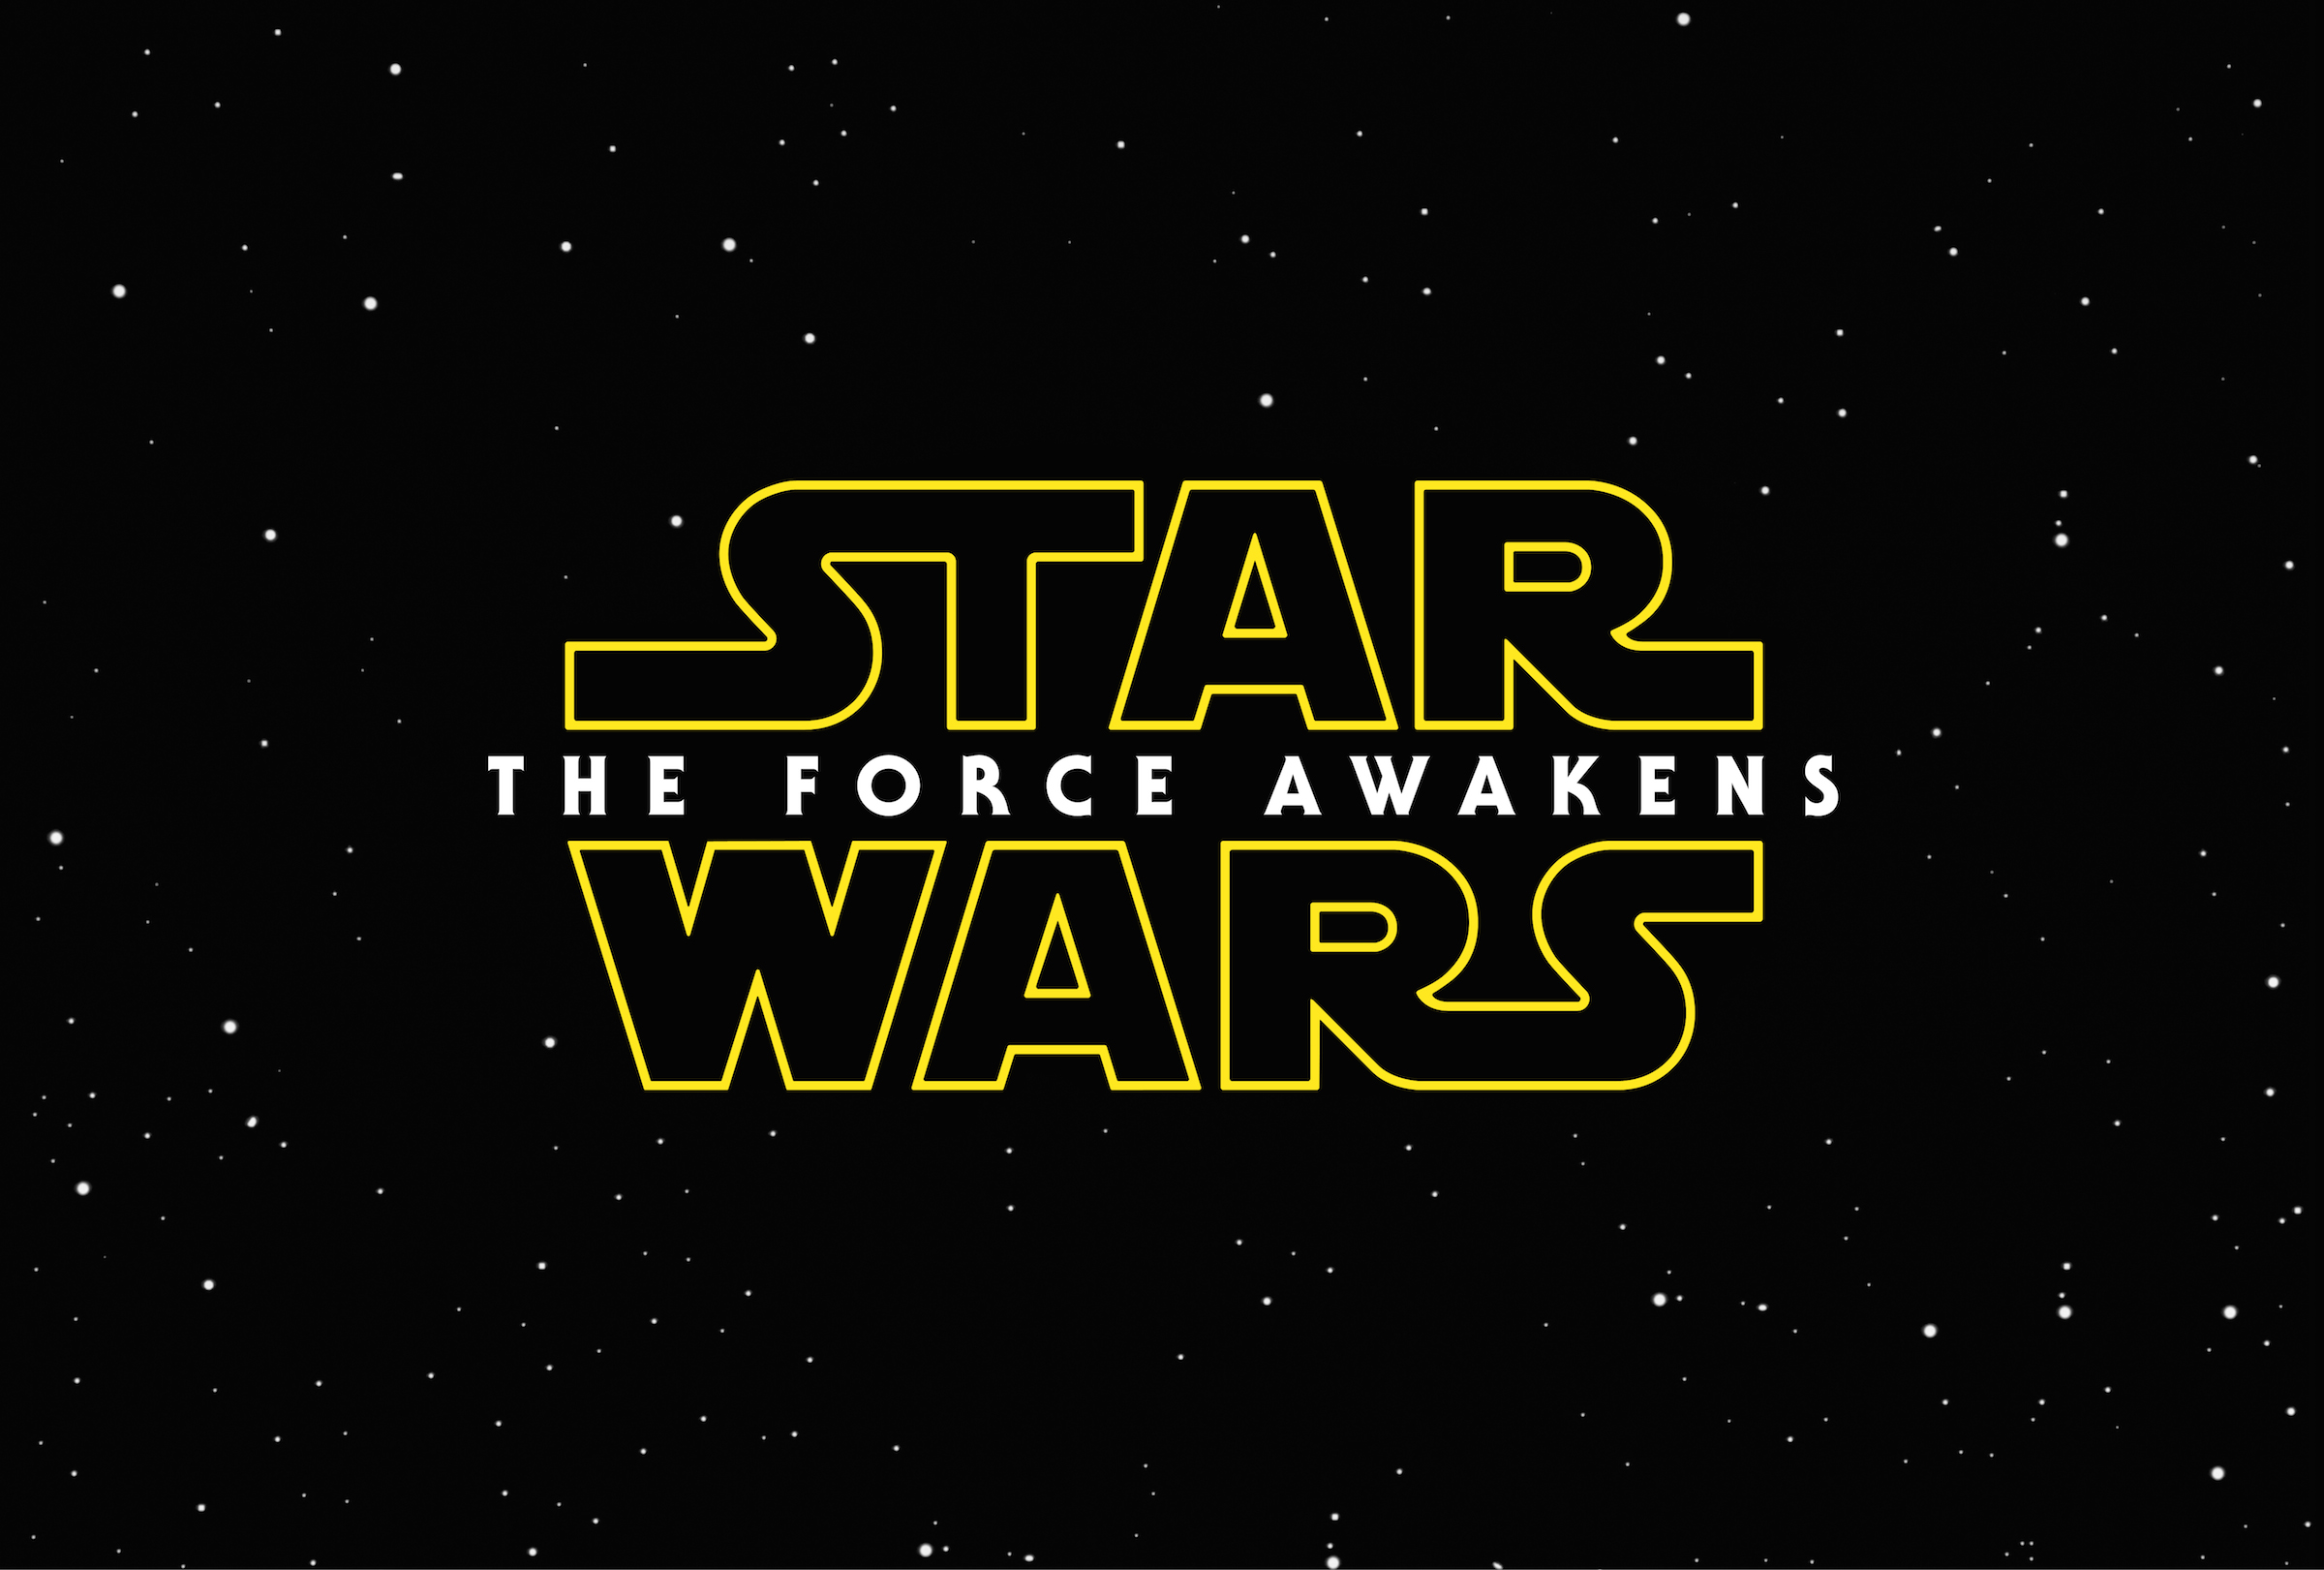 A New Hope For Life Day Star Wars Episode Vii The Force Awakens In Review Geek Melee